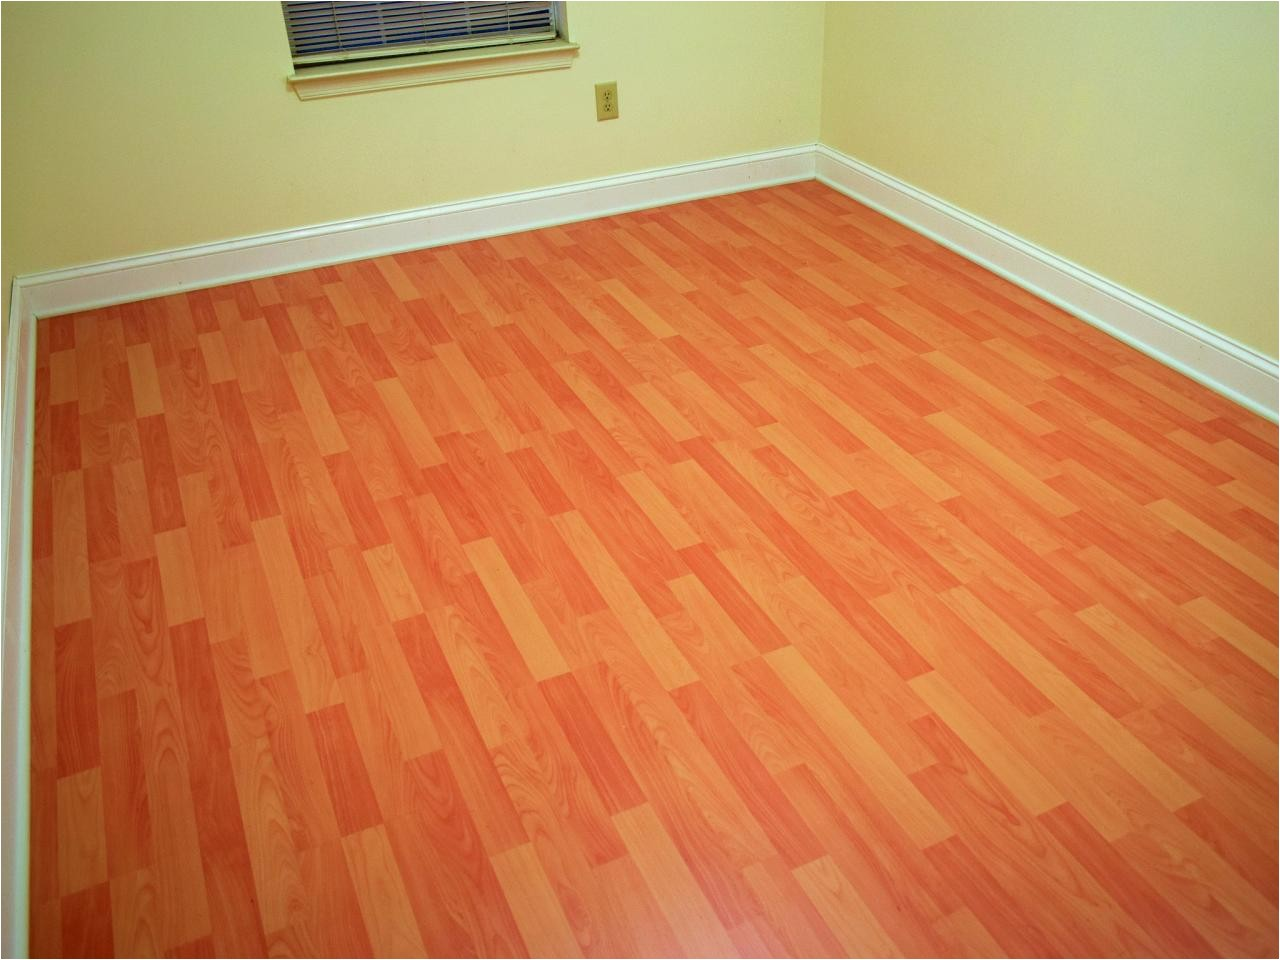 Roll Out Laminate topping for Your Deck Deck Flooring top Preferred Home Design